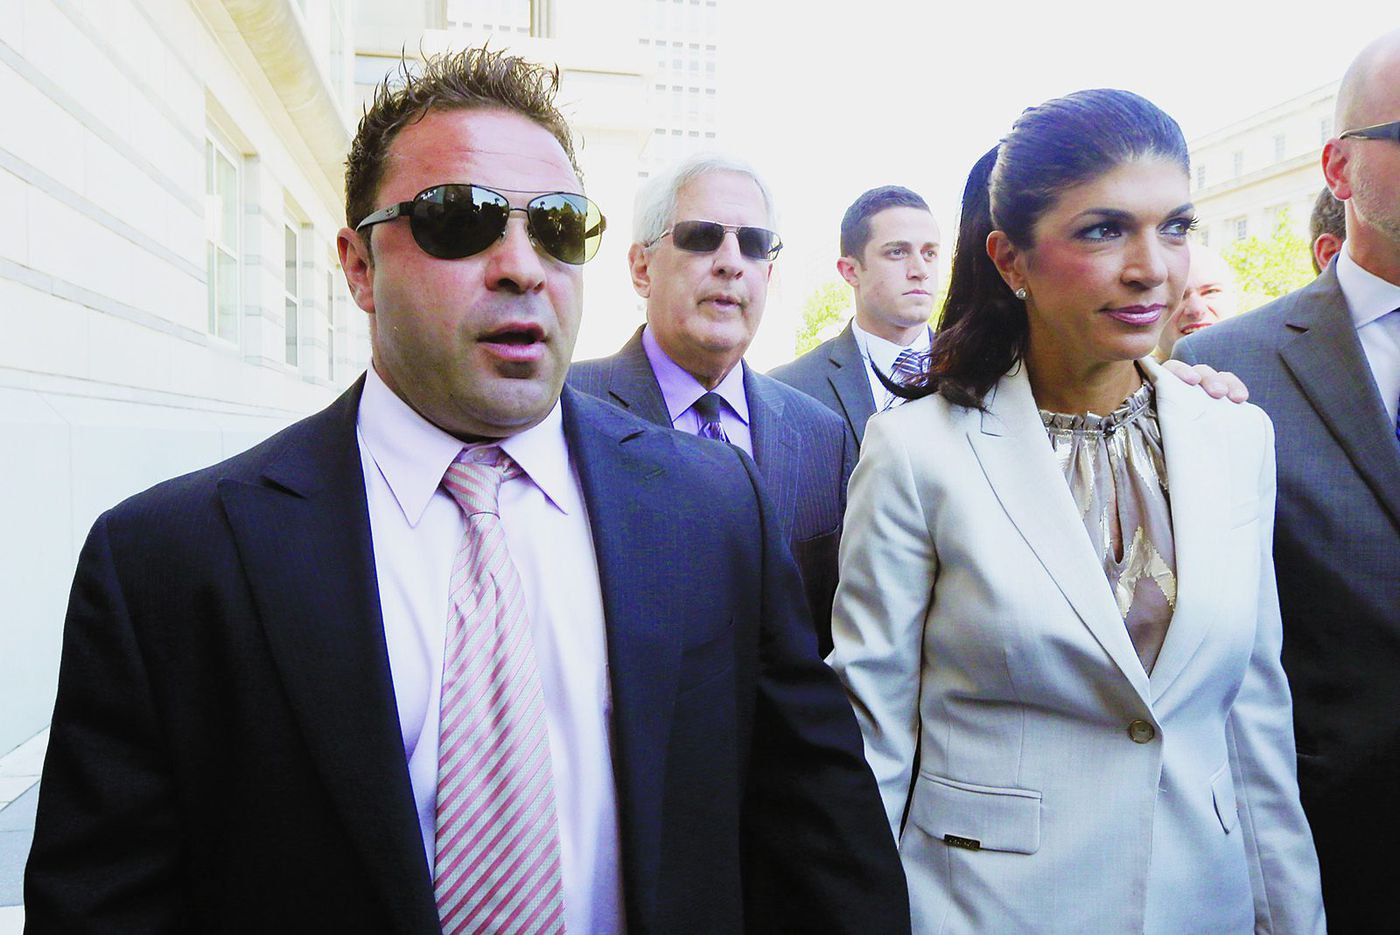 'Real Housewives' husband Joe Giudice to be deported